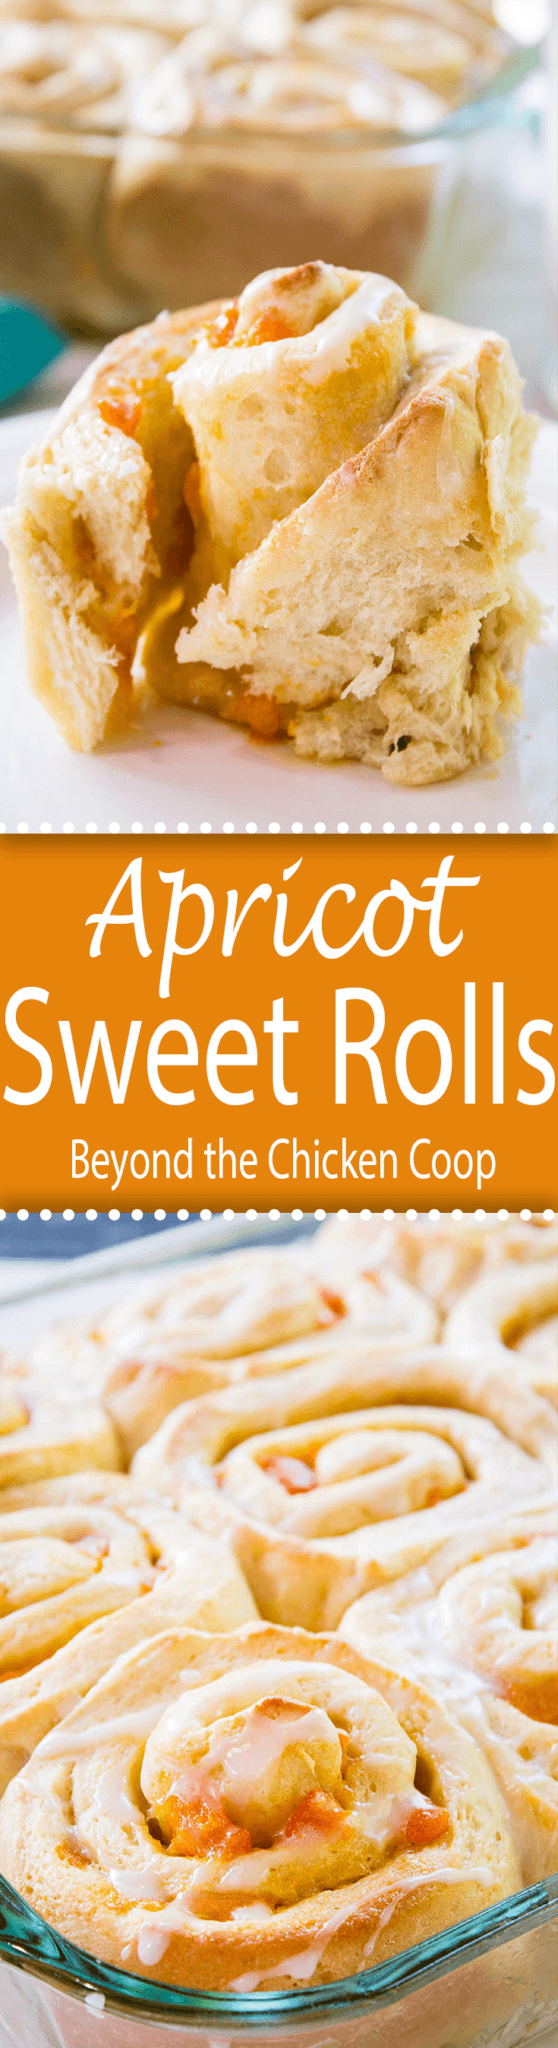 A delicious breakfast treat, apricot sweet rolls. beyondthechickencoop.com